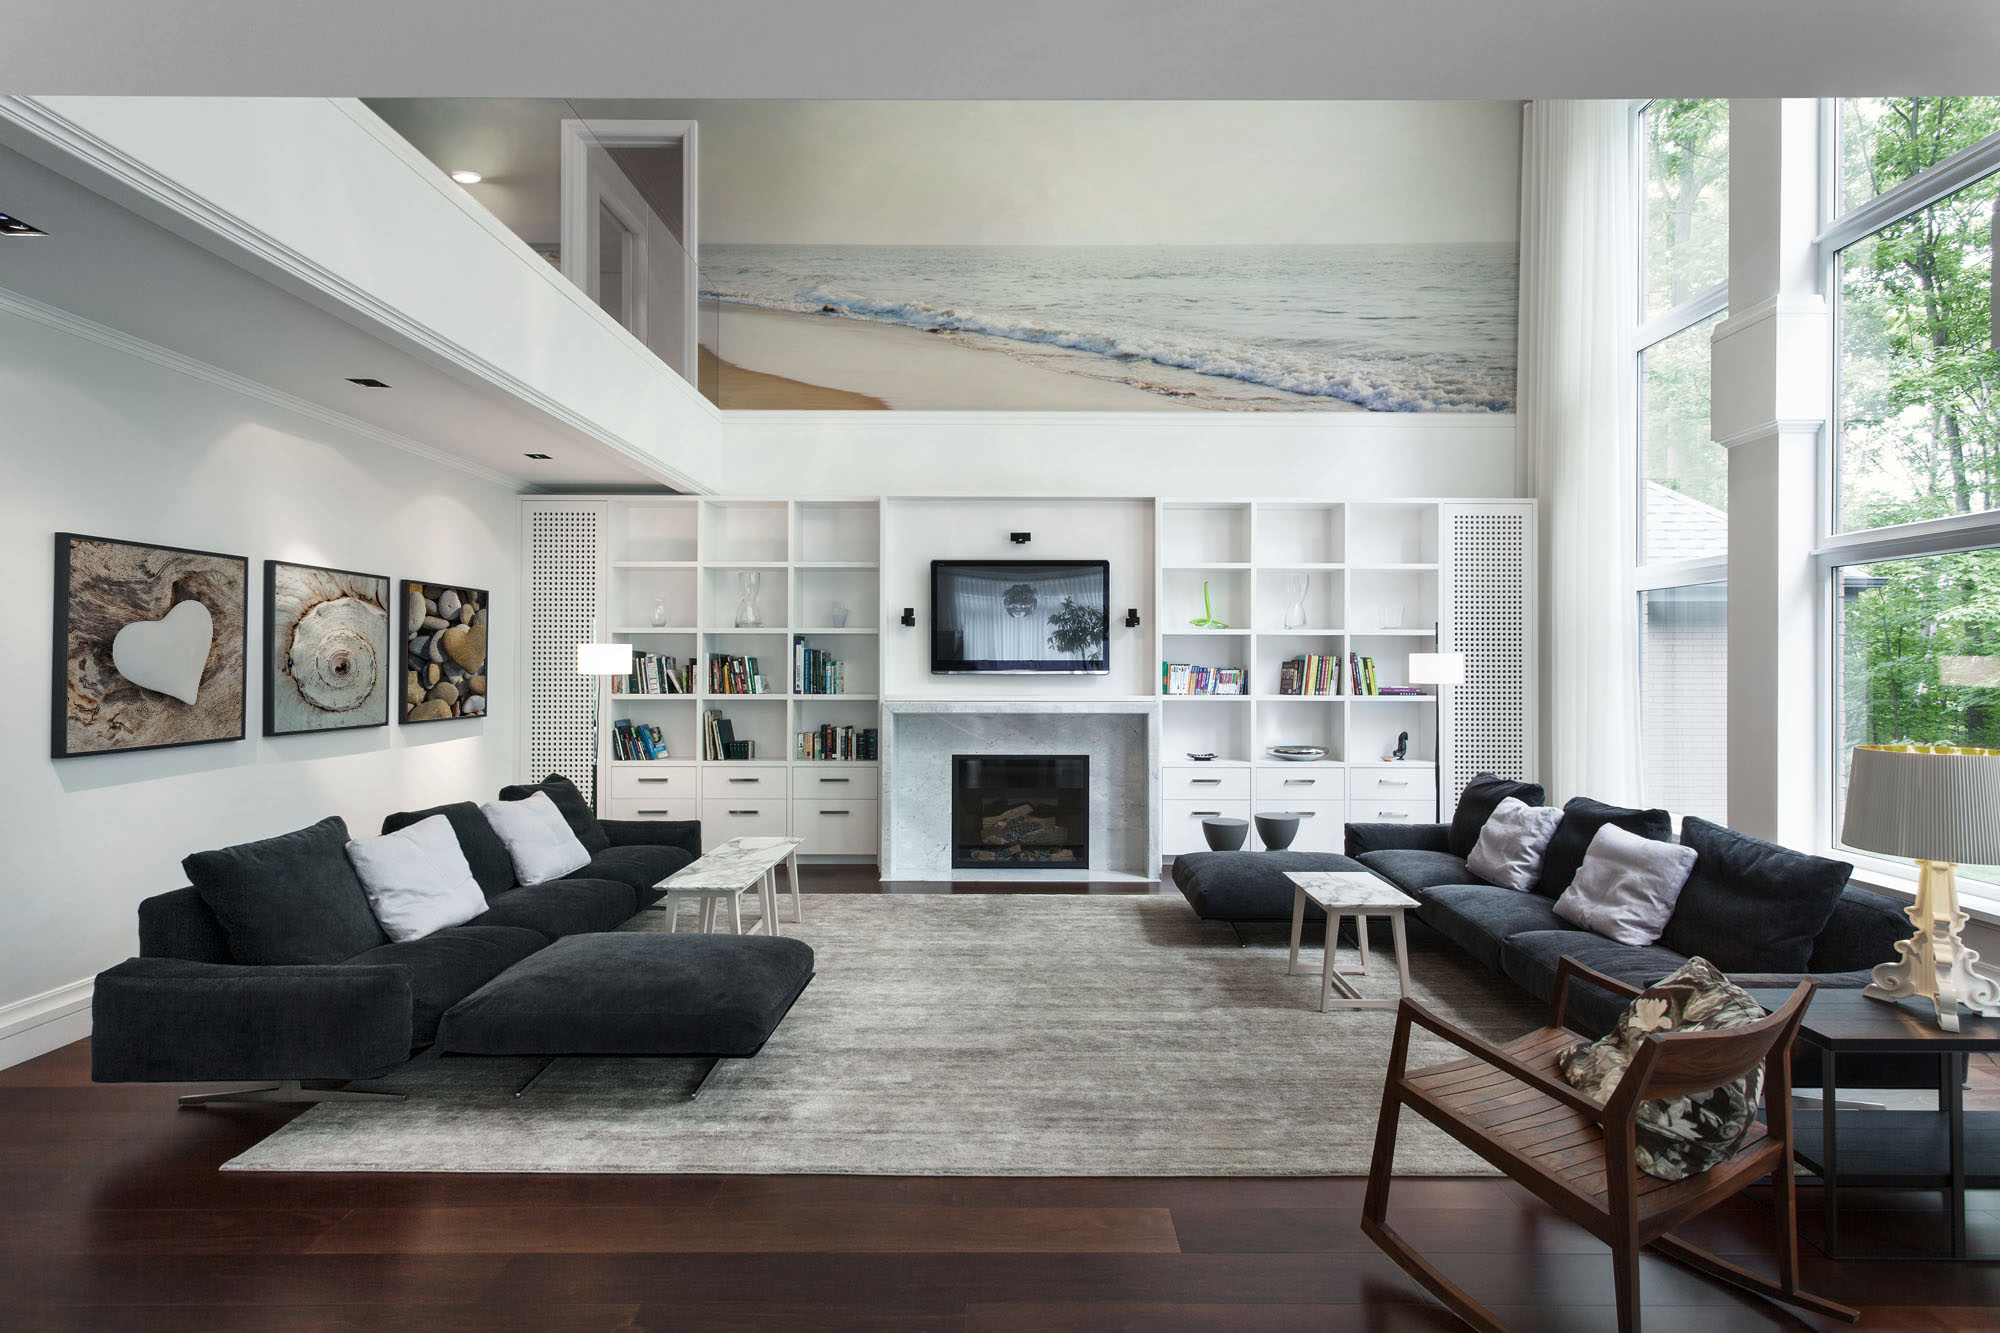 Rolling Stones • Living room - Contemporary - Nature - Landscapes - Wall Murals - Posters